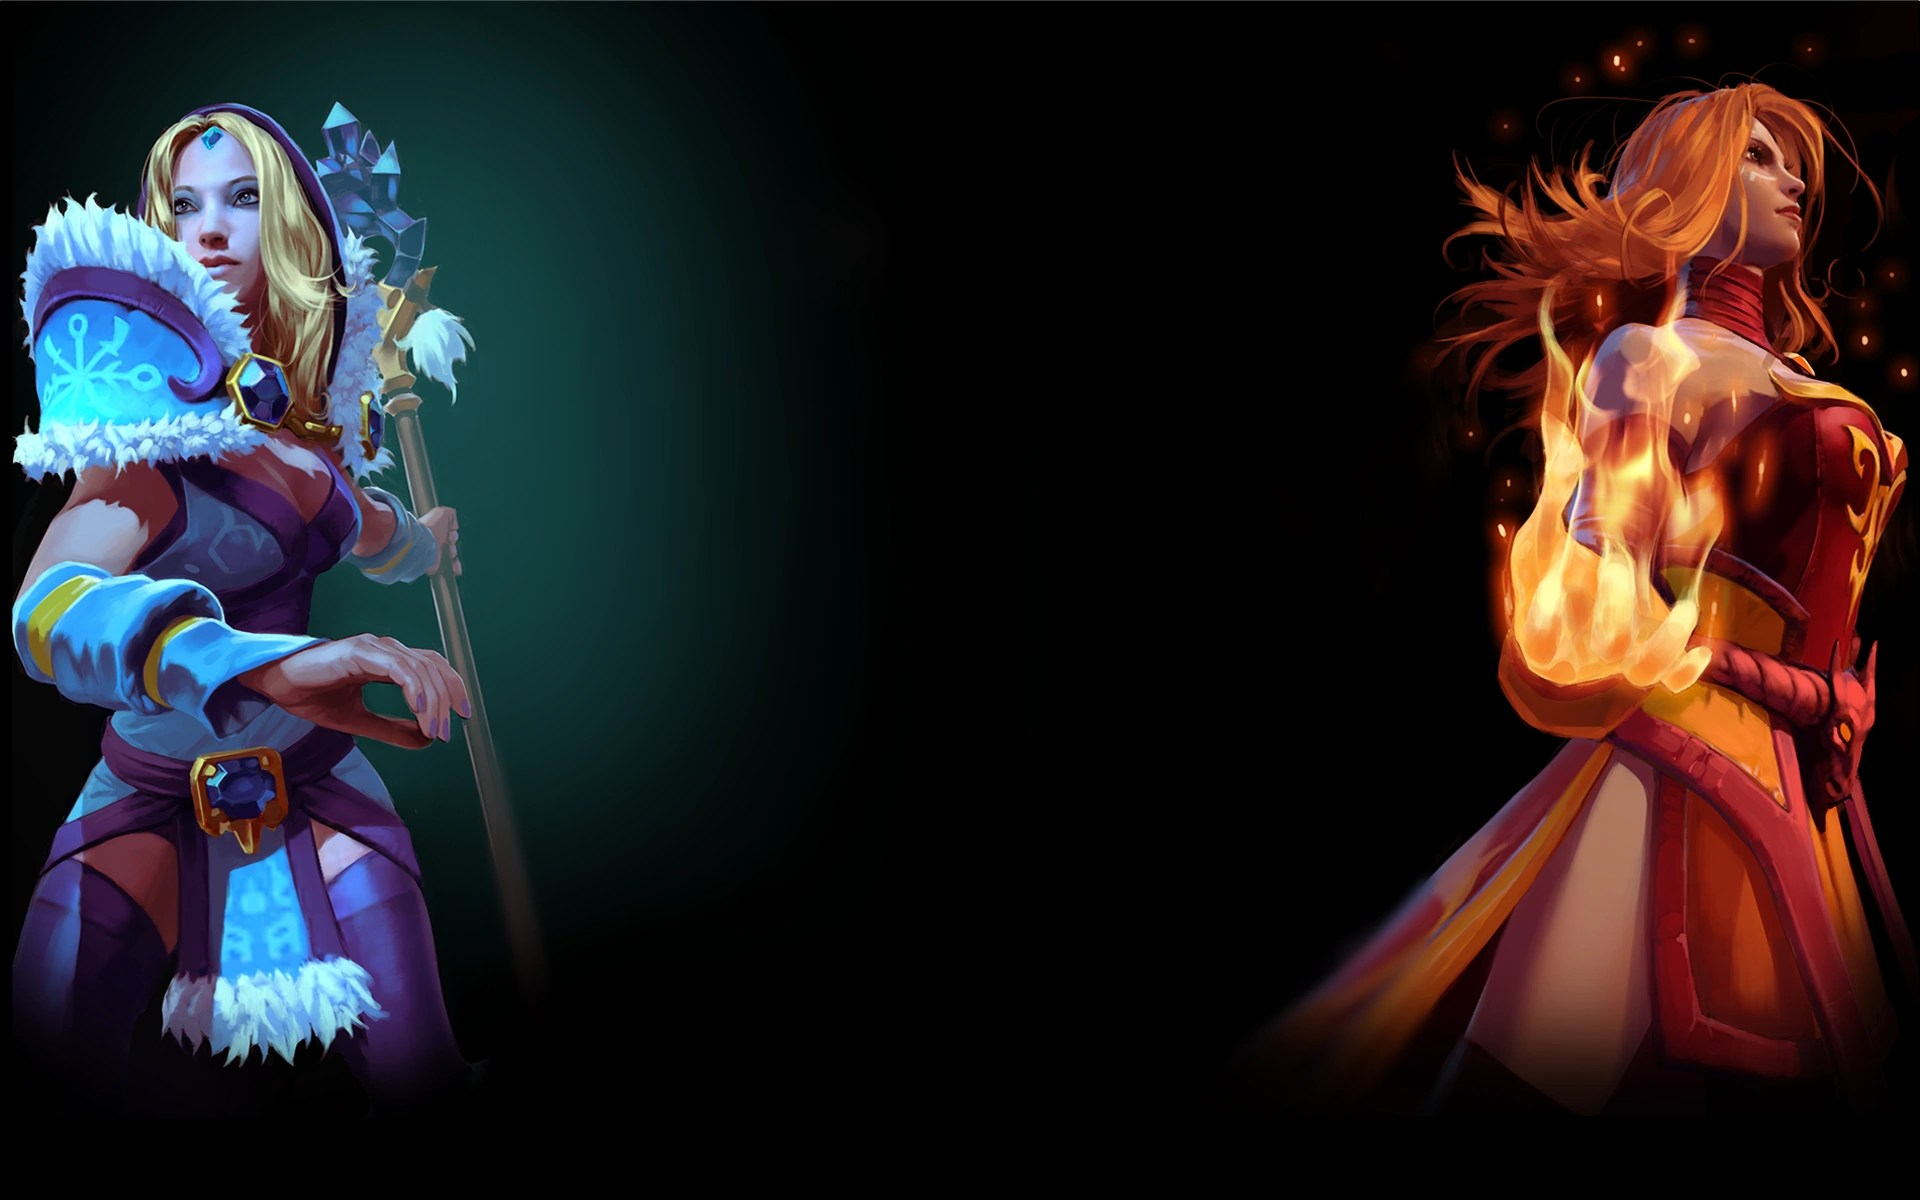 Image Dota 2 Background Crystal Maiden And Linapng